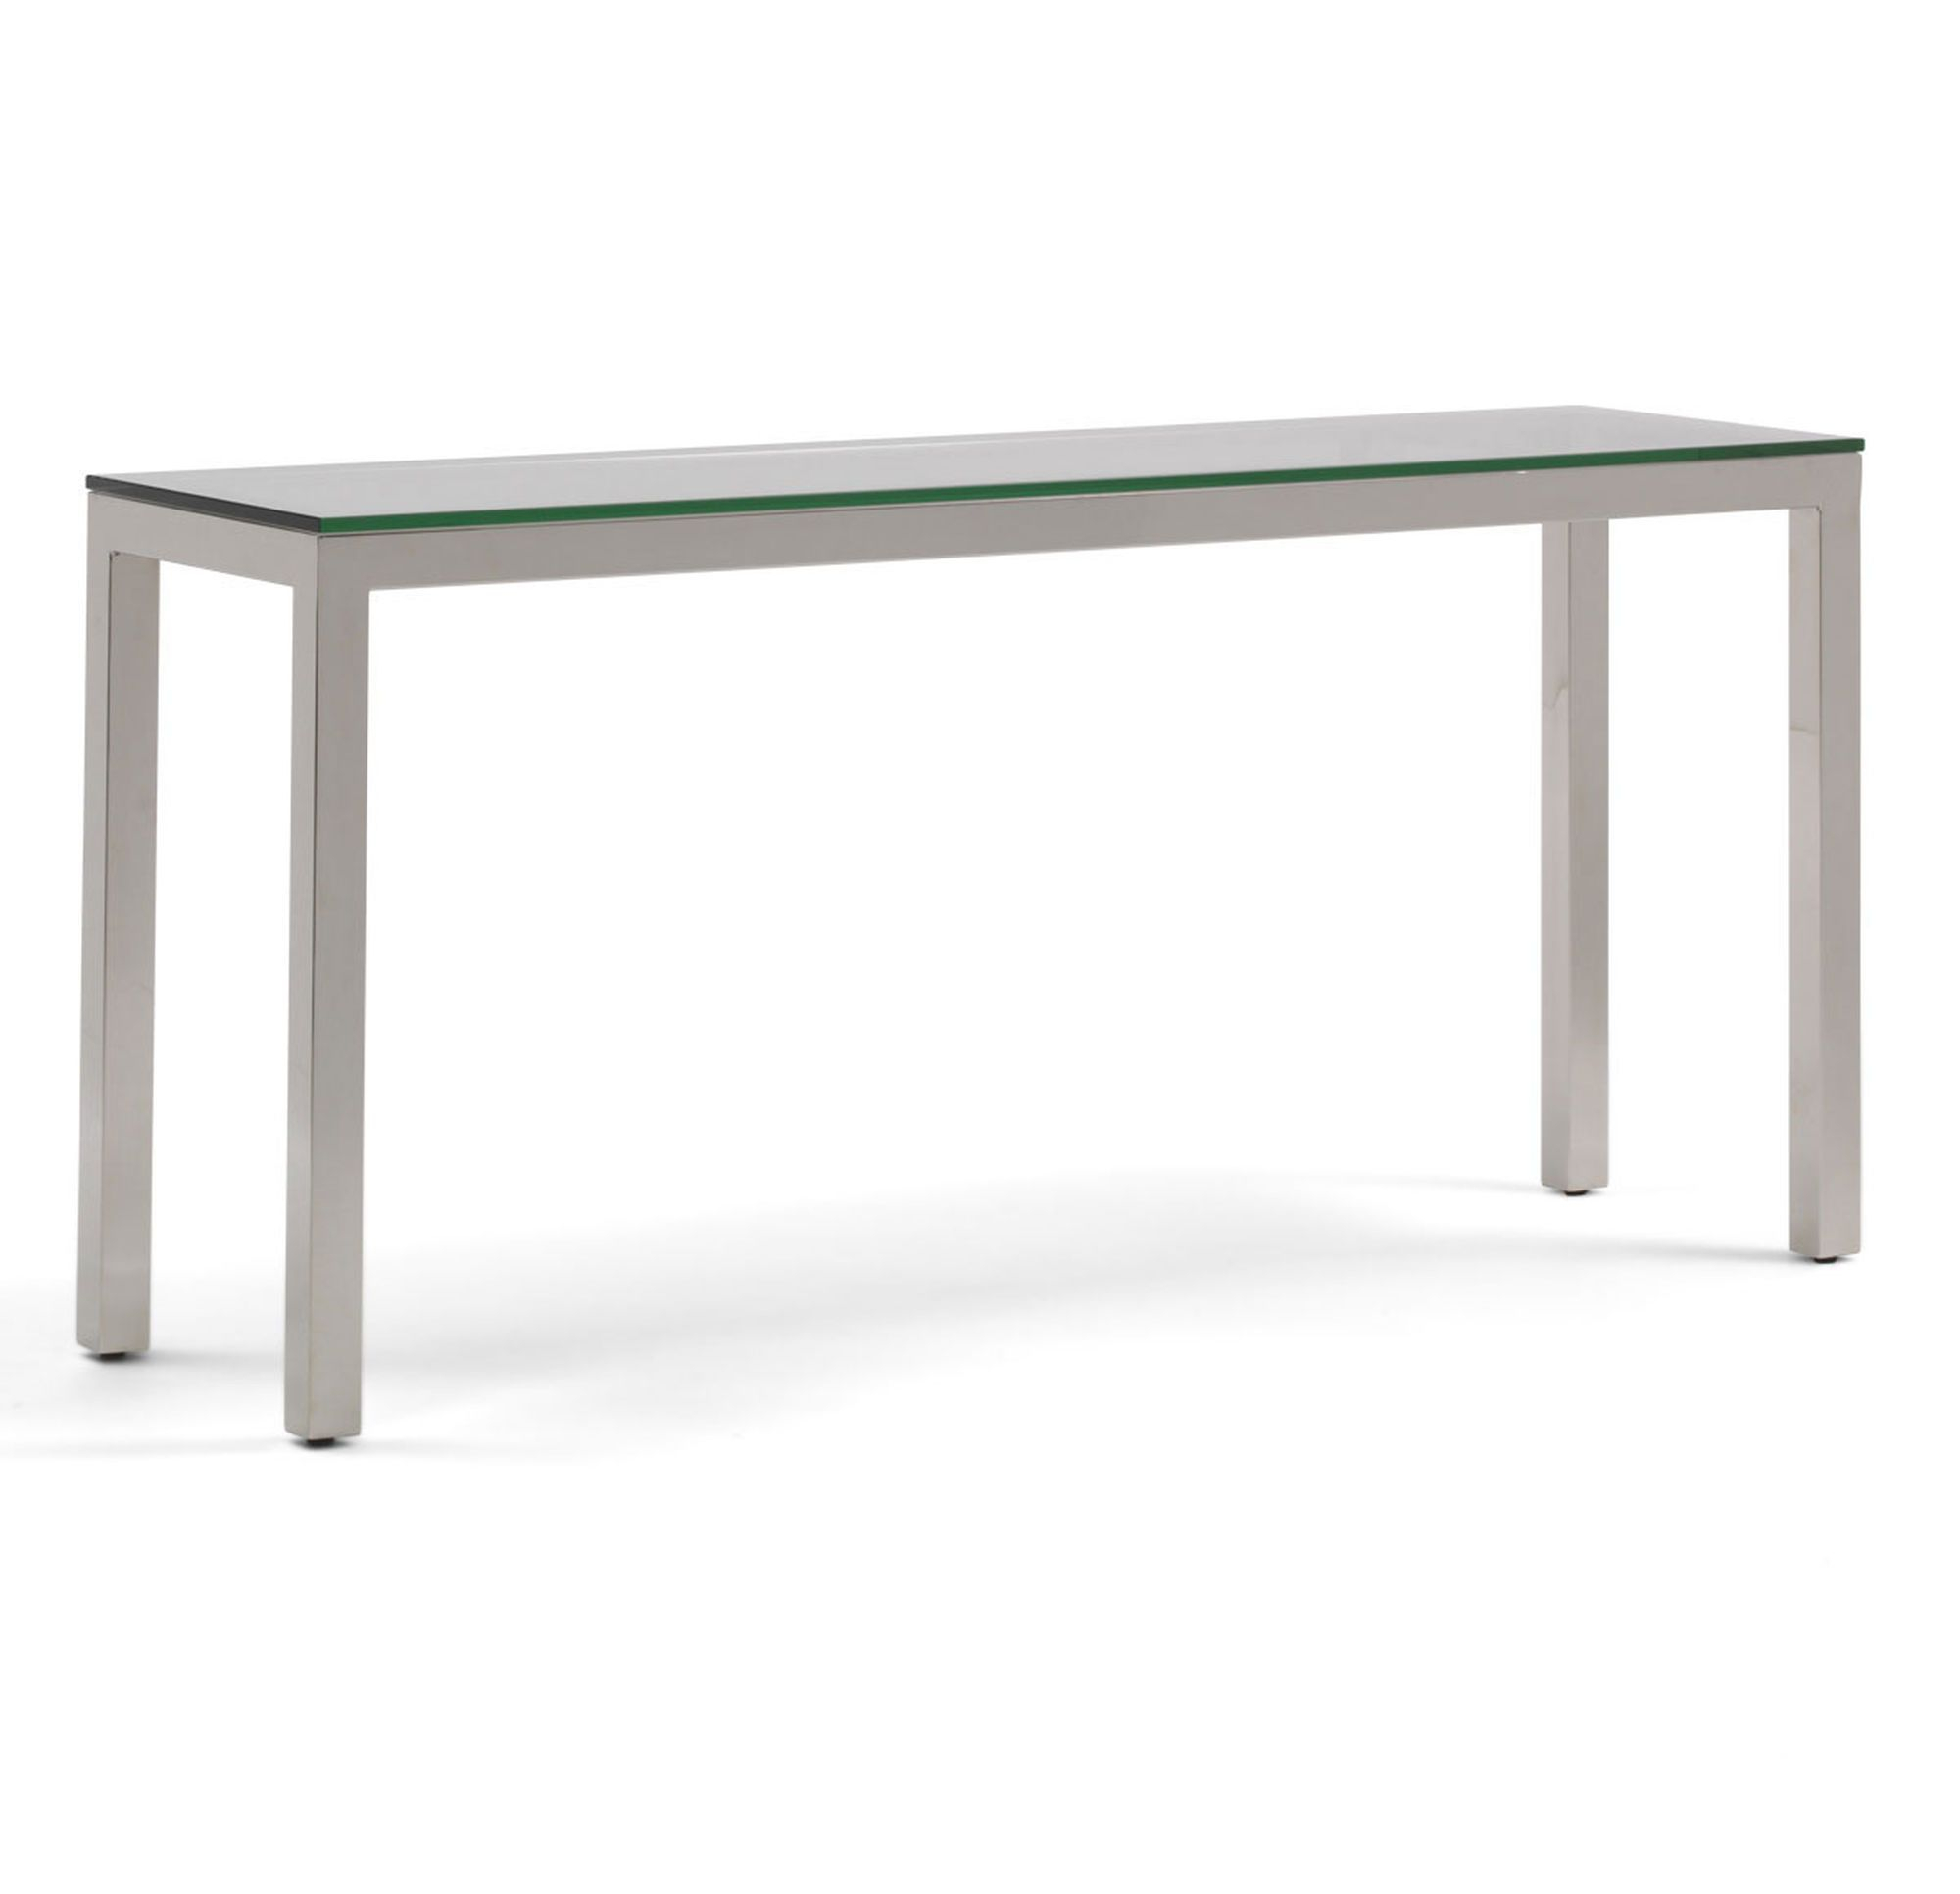 Classic Parsons Console Table – Polished Stainless Steel, , Hi Res Intended For Parsons Clear Glass Top & Stainless Steel Base 48x16 Console Tables (View 10 of 30)